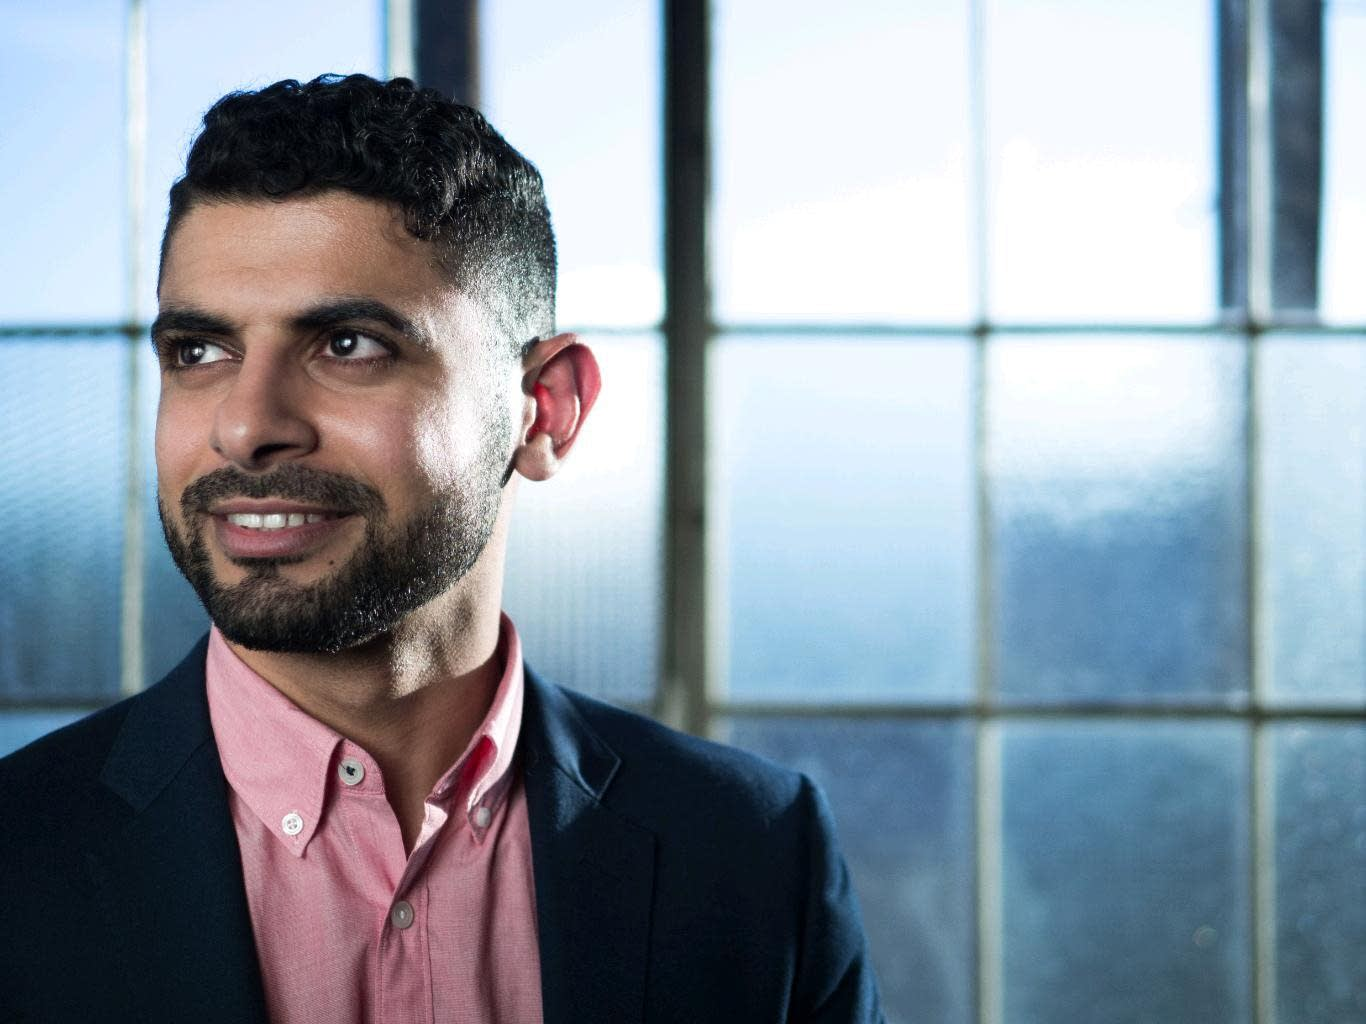 Mokhtar Alkhanshali is the subject of a new book by Dave Eggers.